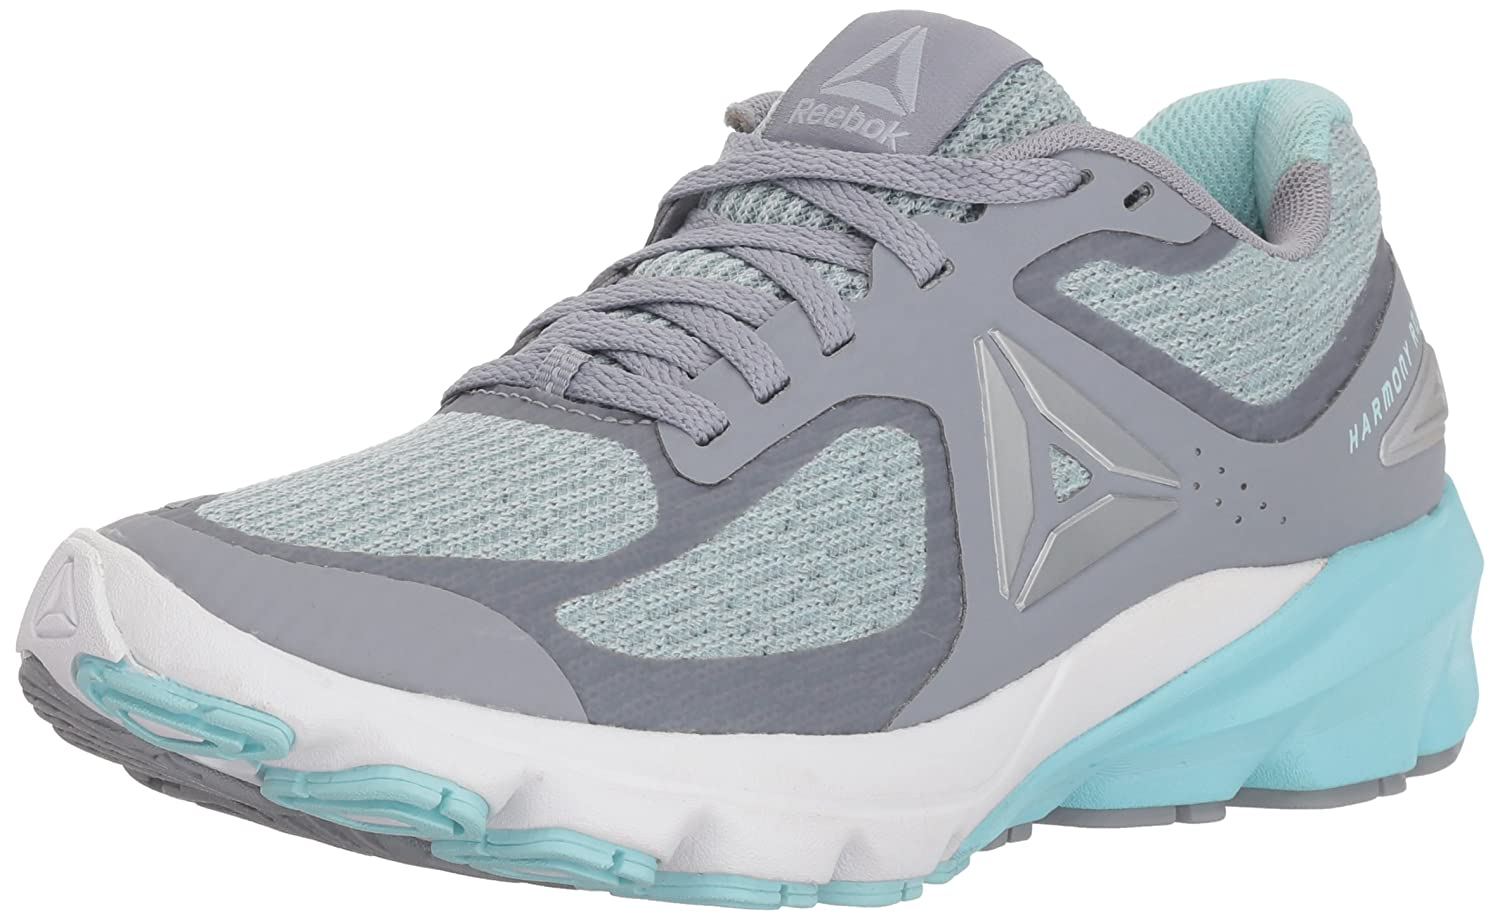 Reebok Women's Harmony Road 2 Sneaker B073XBNKW5 10 B(M) US|Cool Shadow/Blue Lagoon/White/Cloud Grey